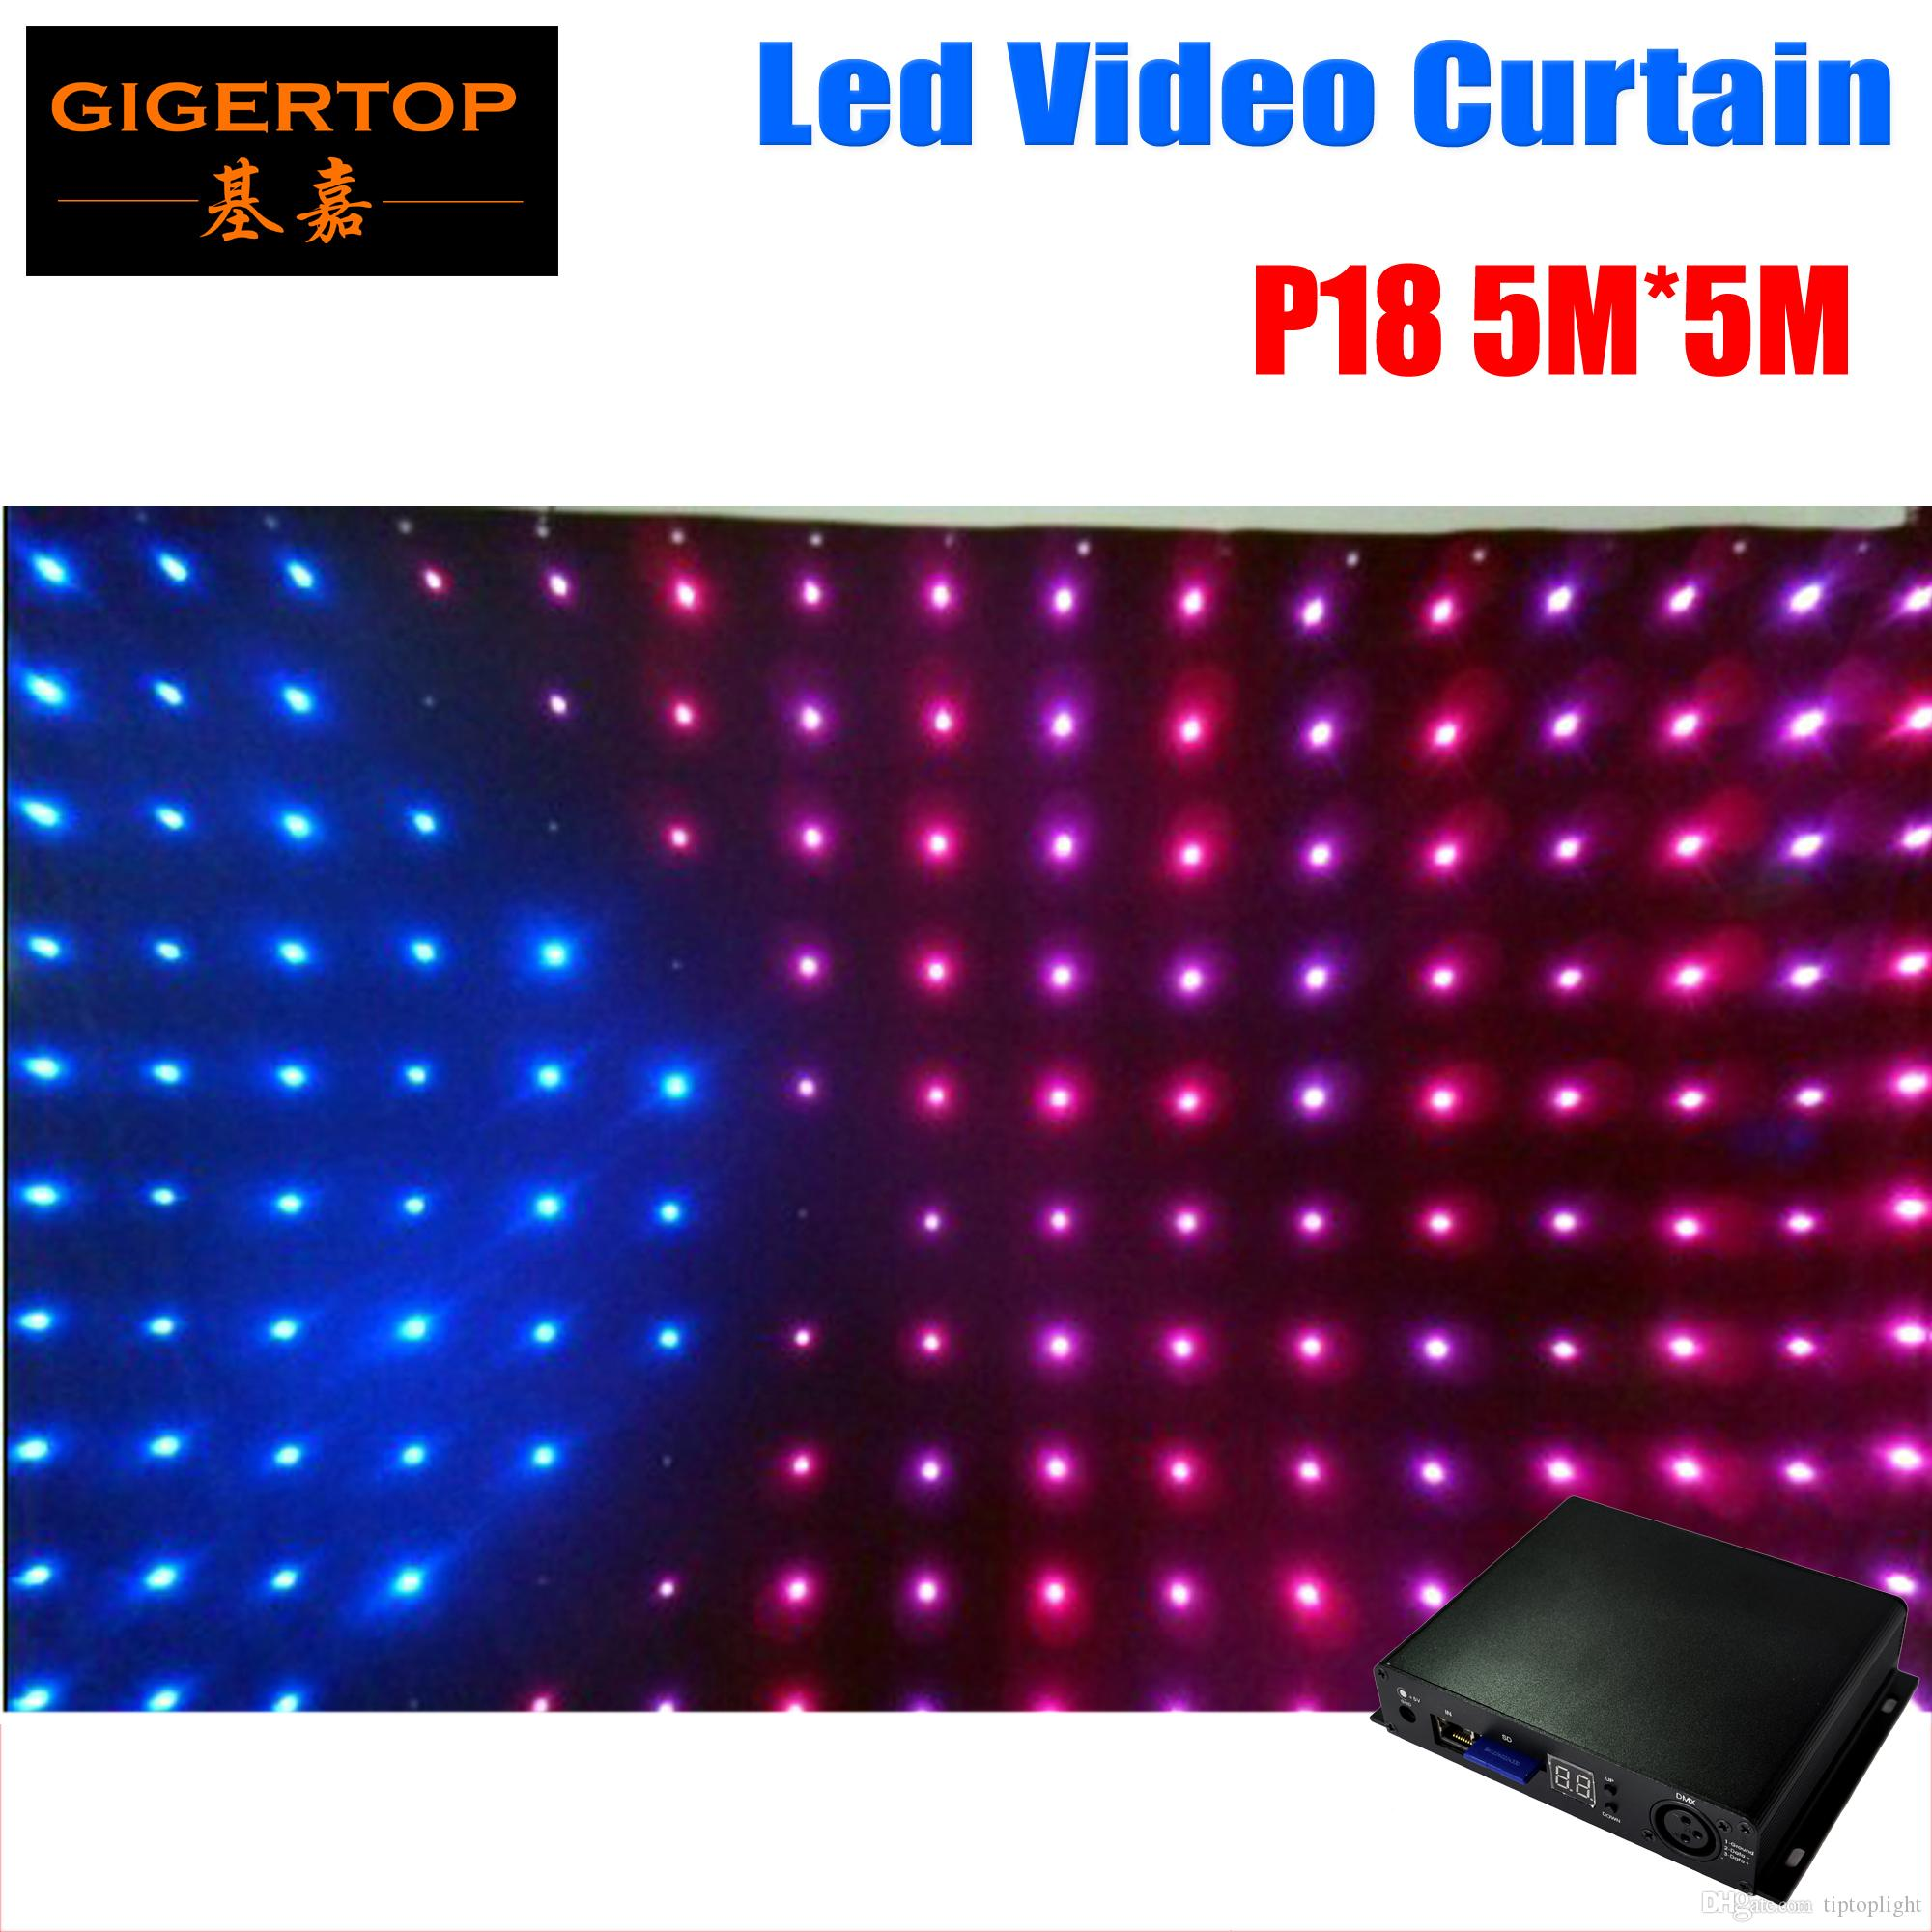 P18/P19/P20 To Choose 5M*5M Led Graphic Curtain Fire-proof with 50 Kinds of Programs P18 Led video curtain,Stage Lighting Decoration Screen